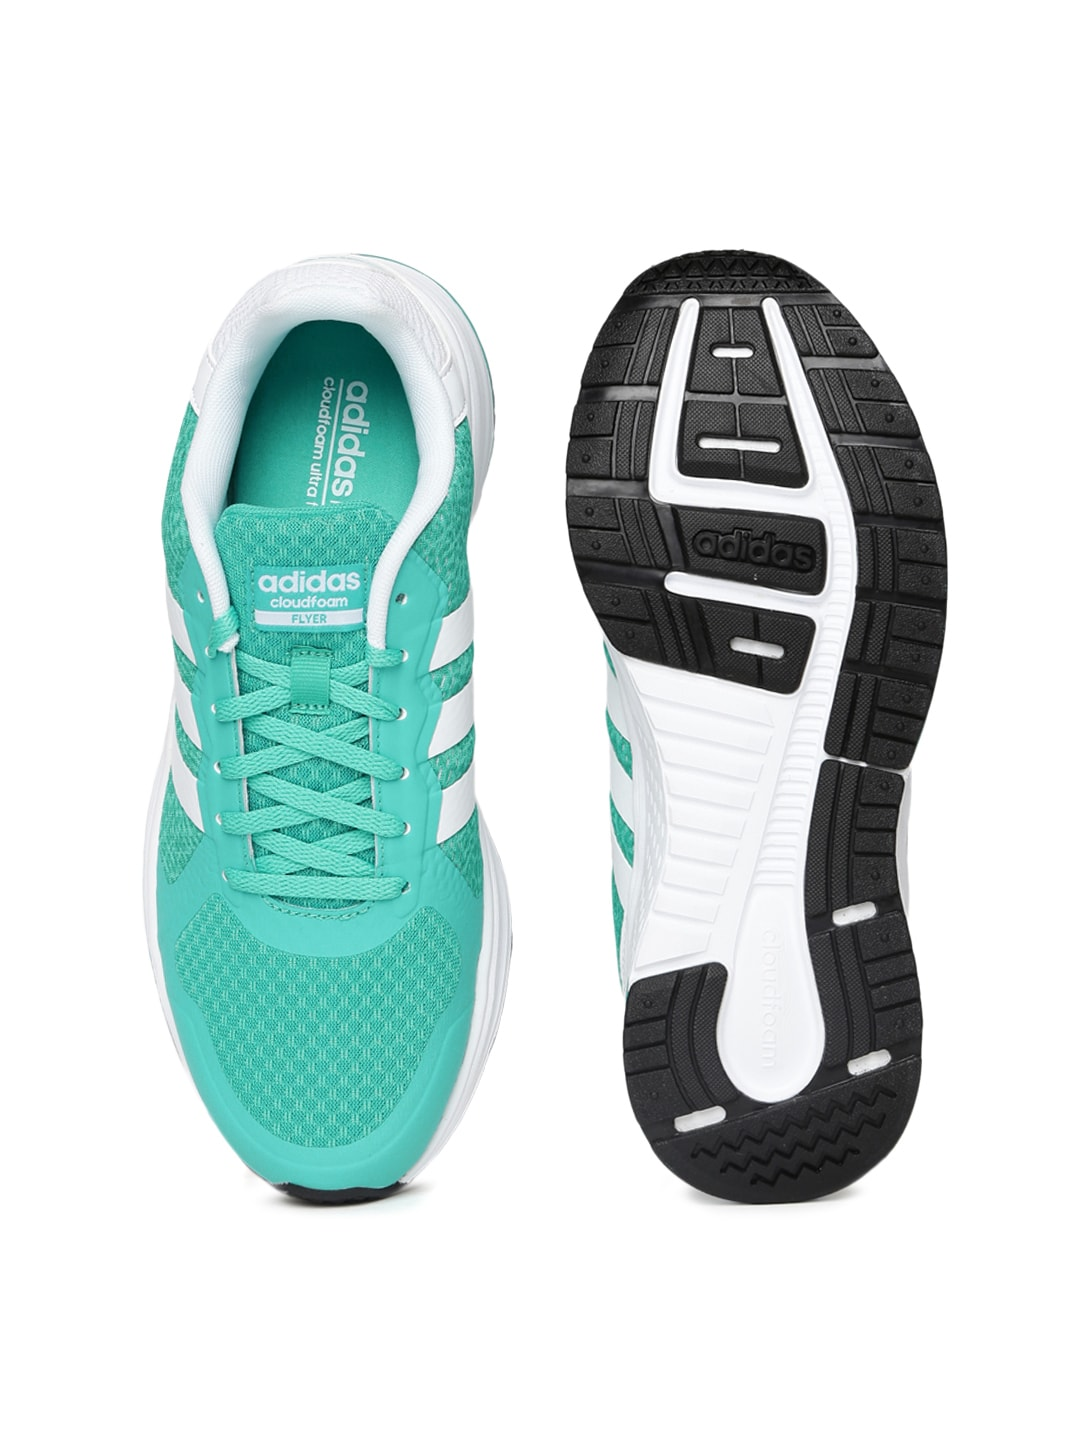 adidas neo green kitchen trainers wholesale